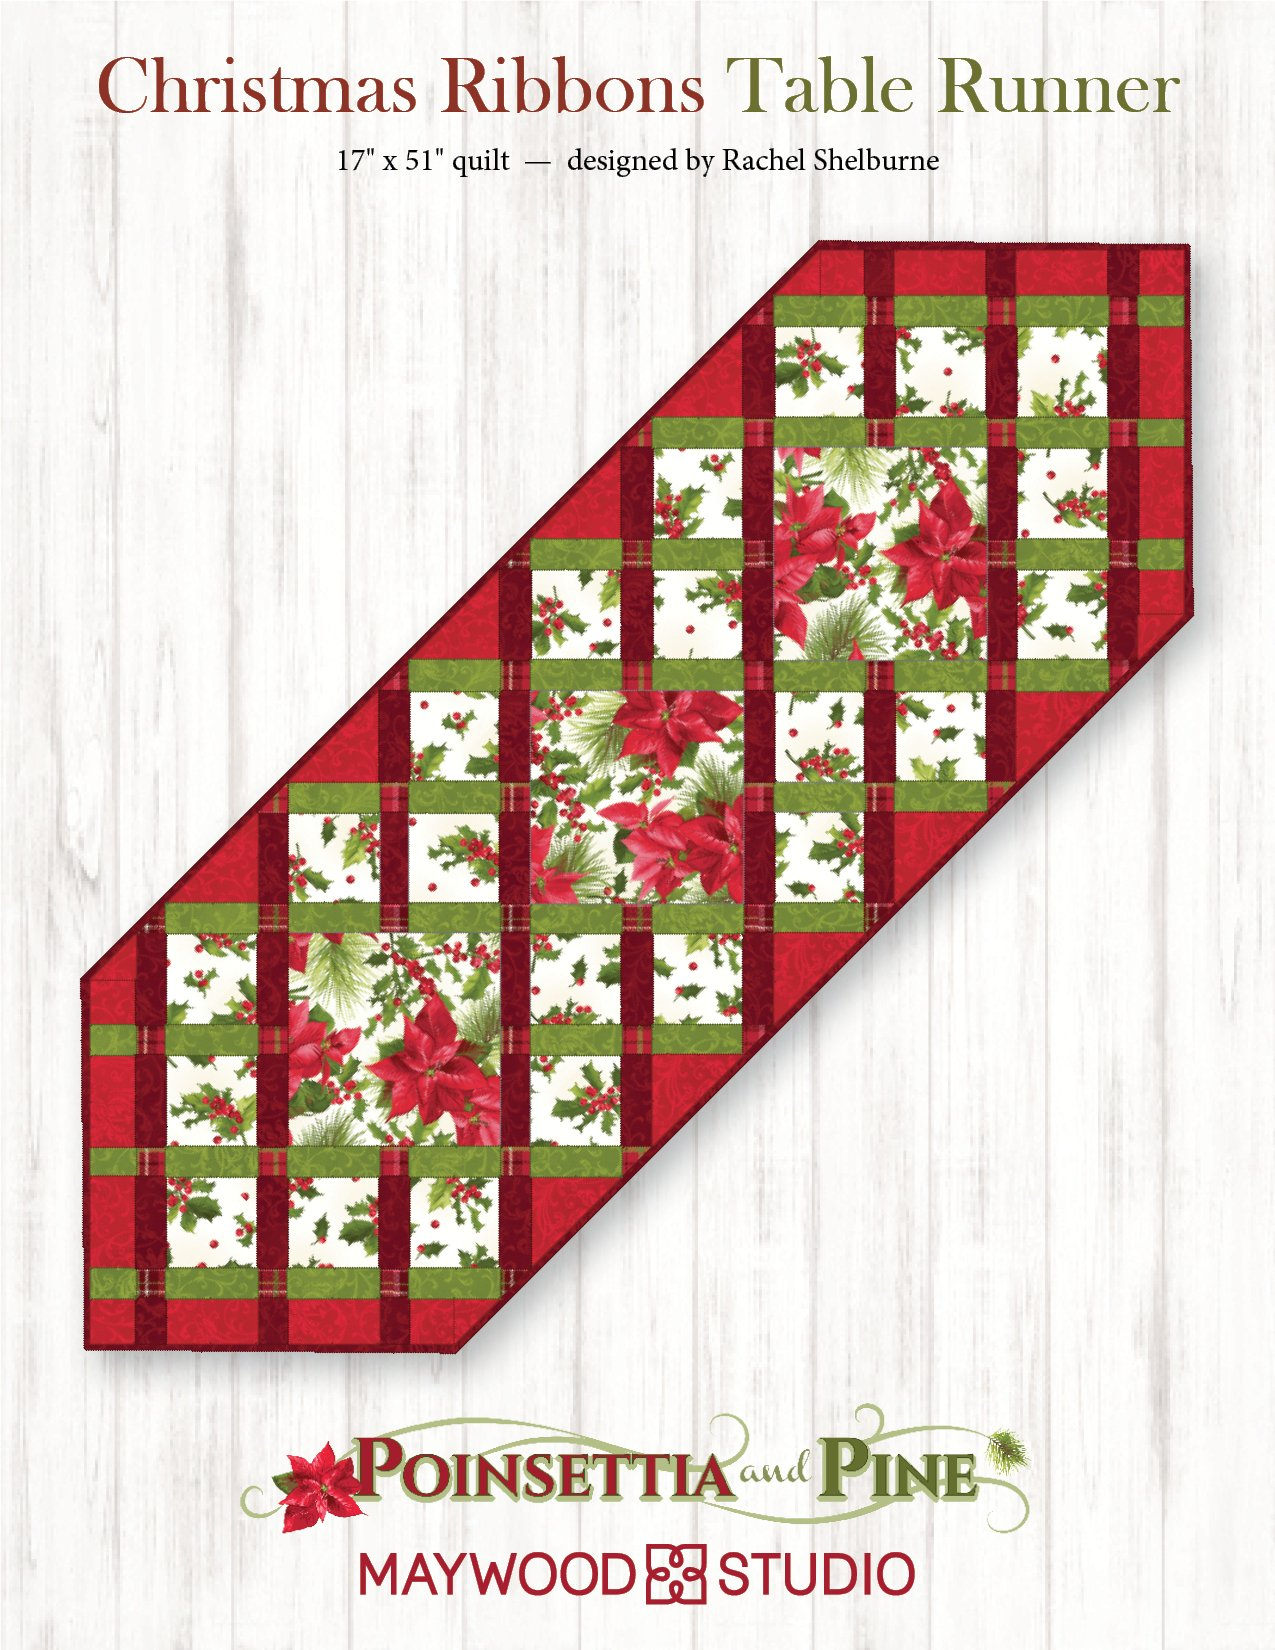 Quilted Christmas Placemat Patterns : quilted, christmas, placemat, patterns, Christmas, Table, Patterns, BOMquilts.com